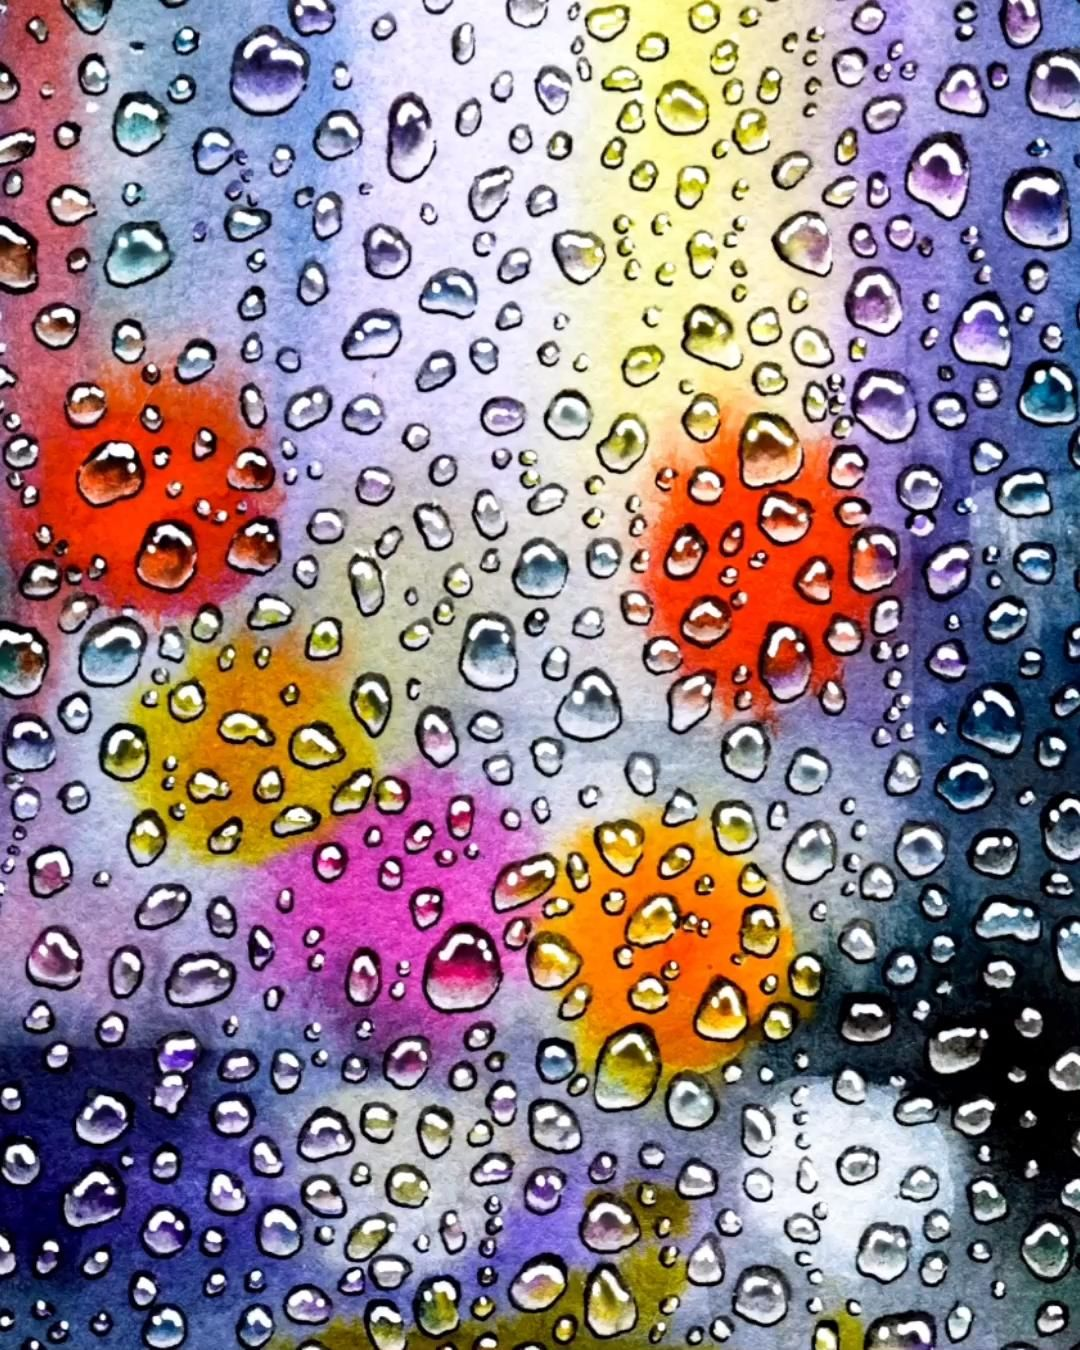 A guide for painting raindrops or water droplets. This is the same technique I used to paint my